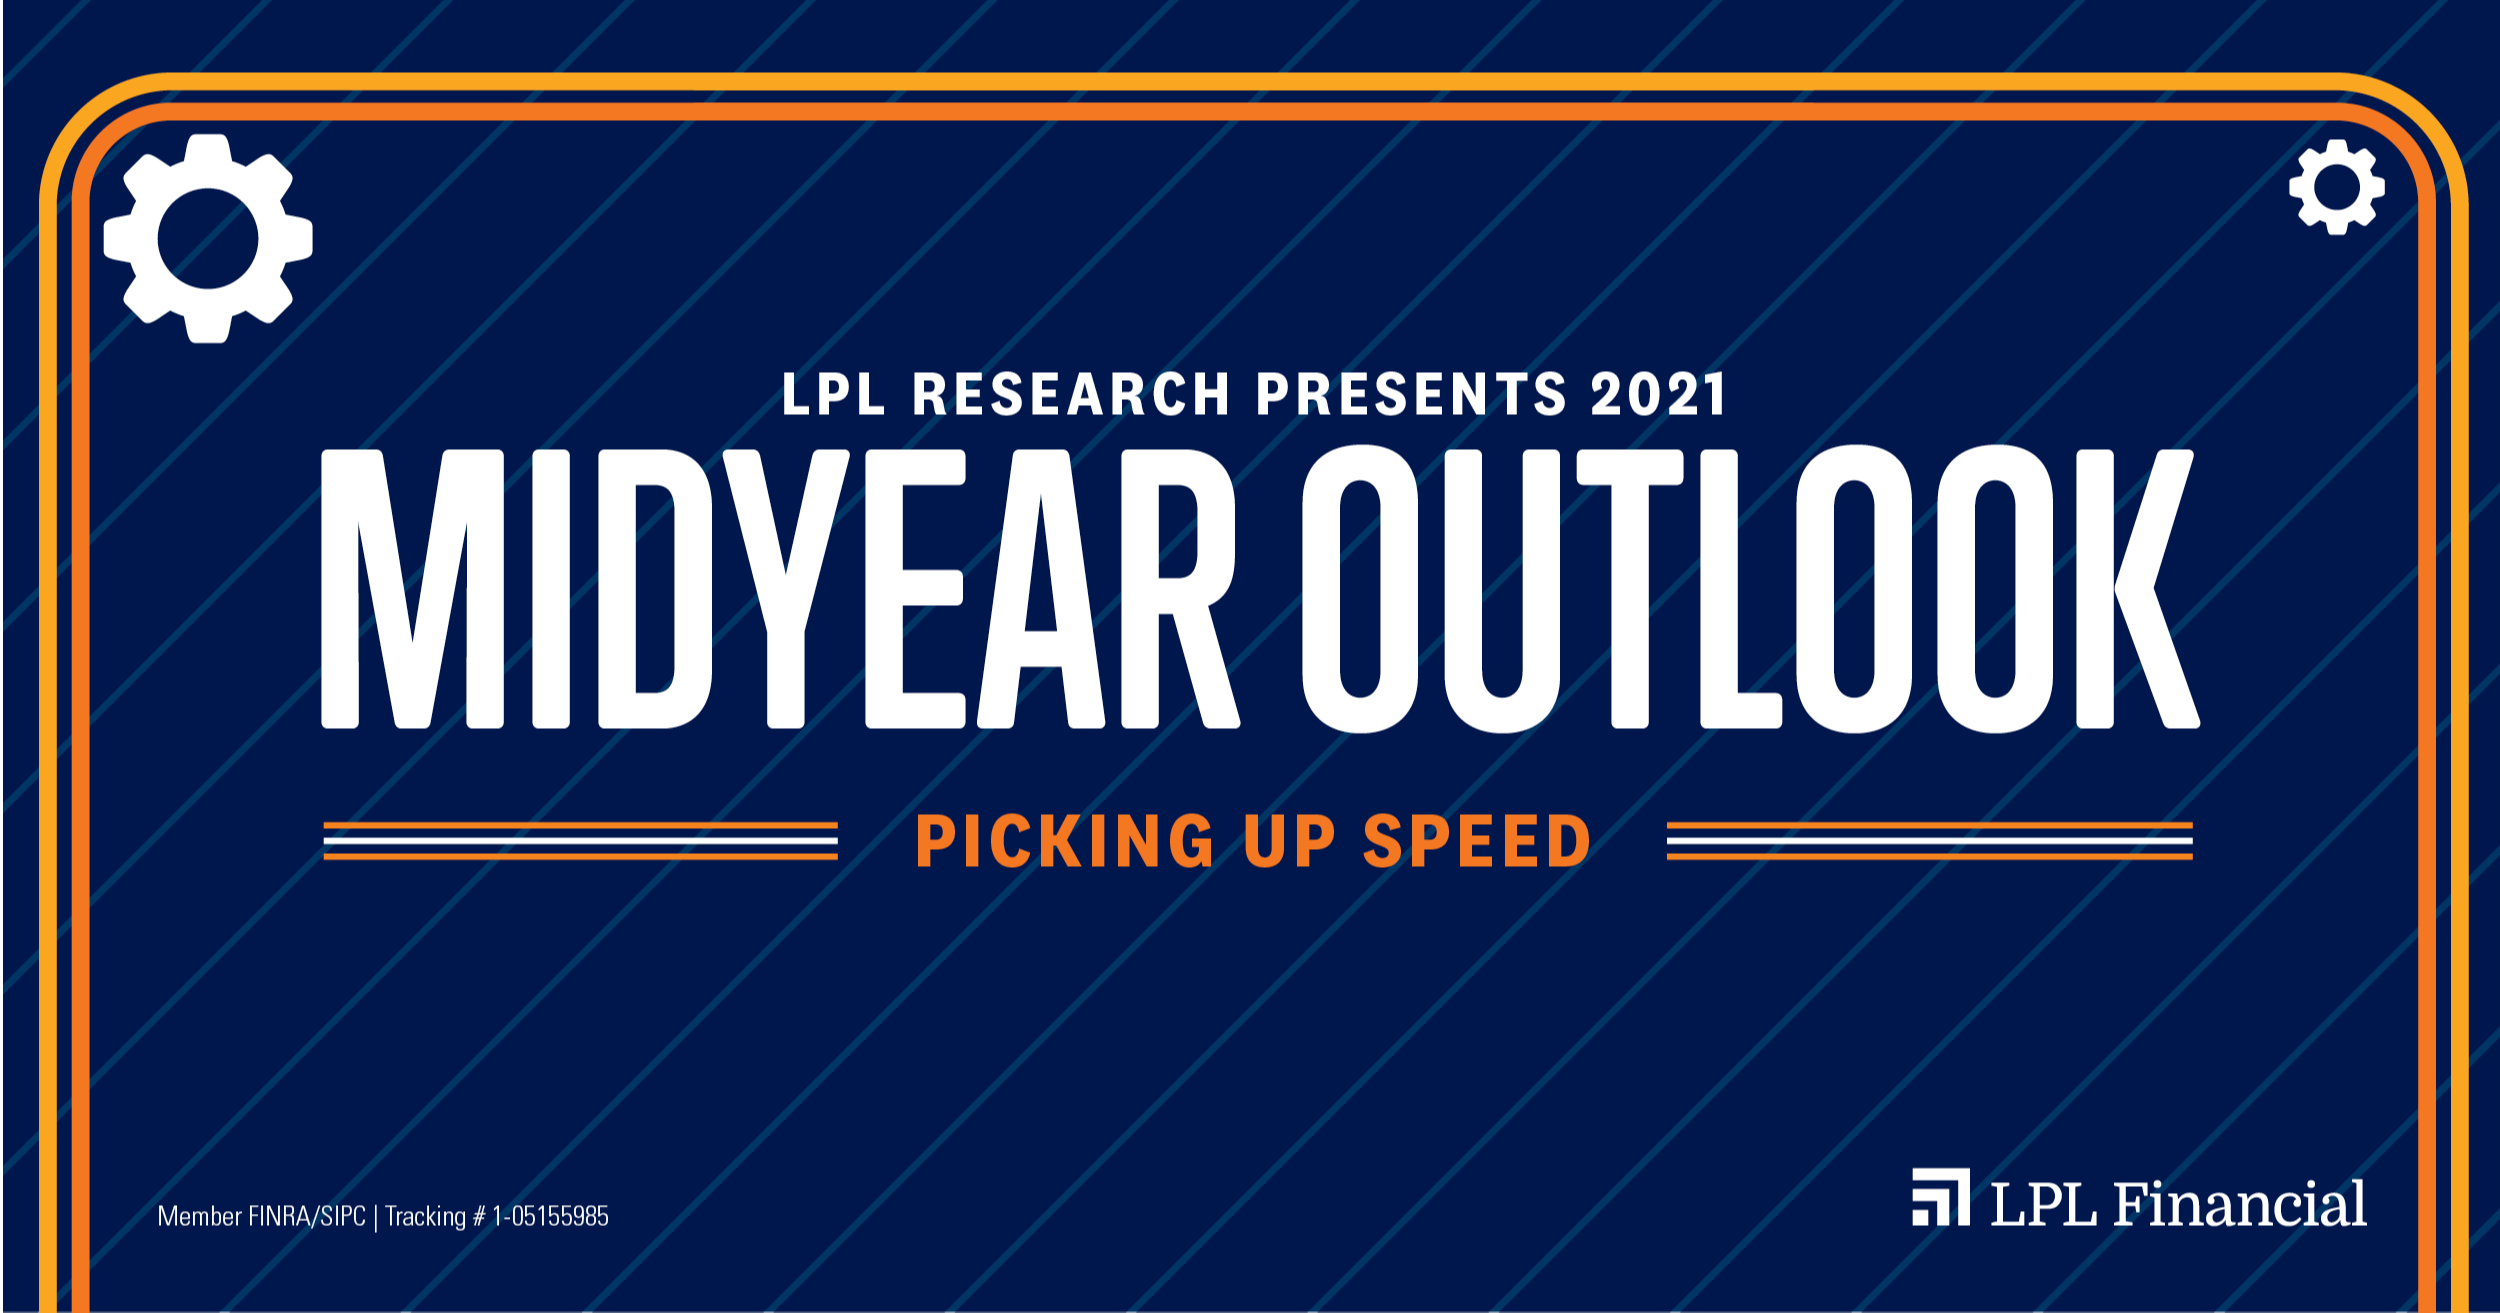 LPL Financial Research Midyear Outlook 2021: Picking Up Speed Thumbnail